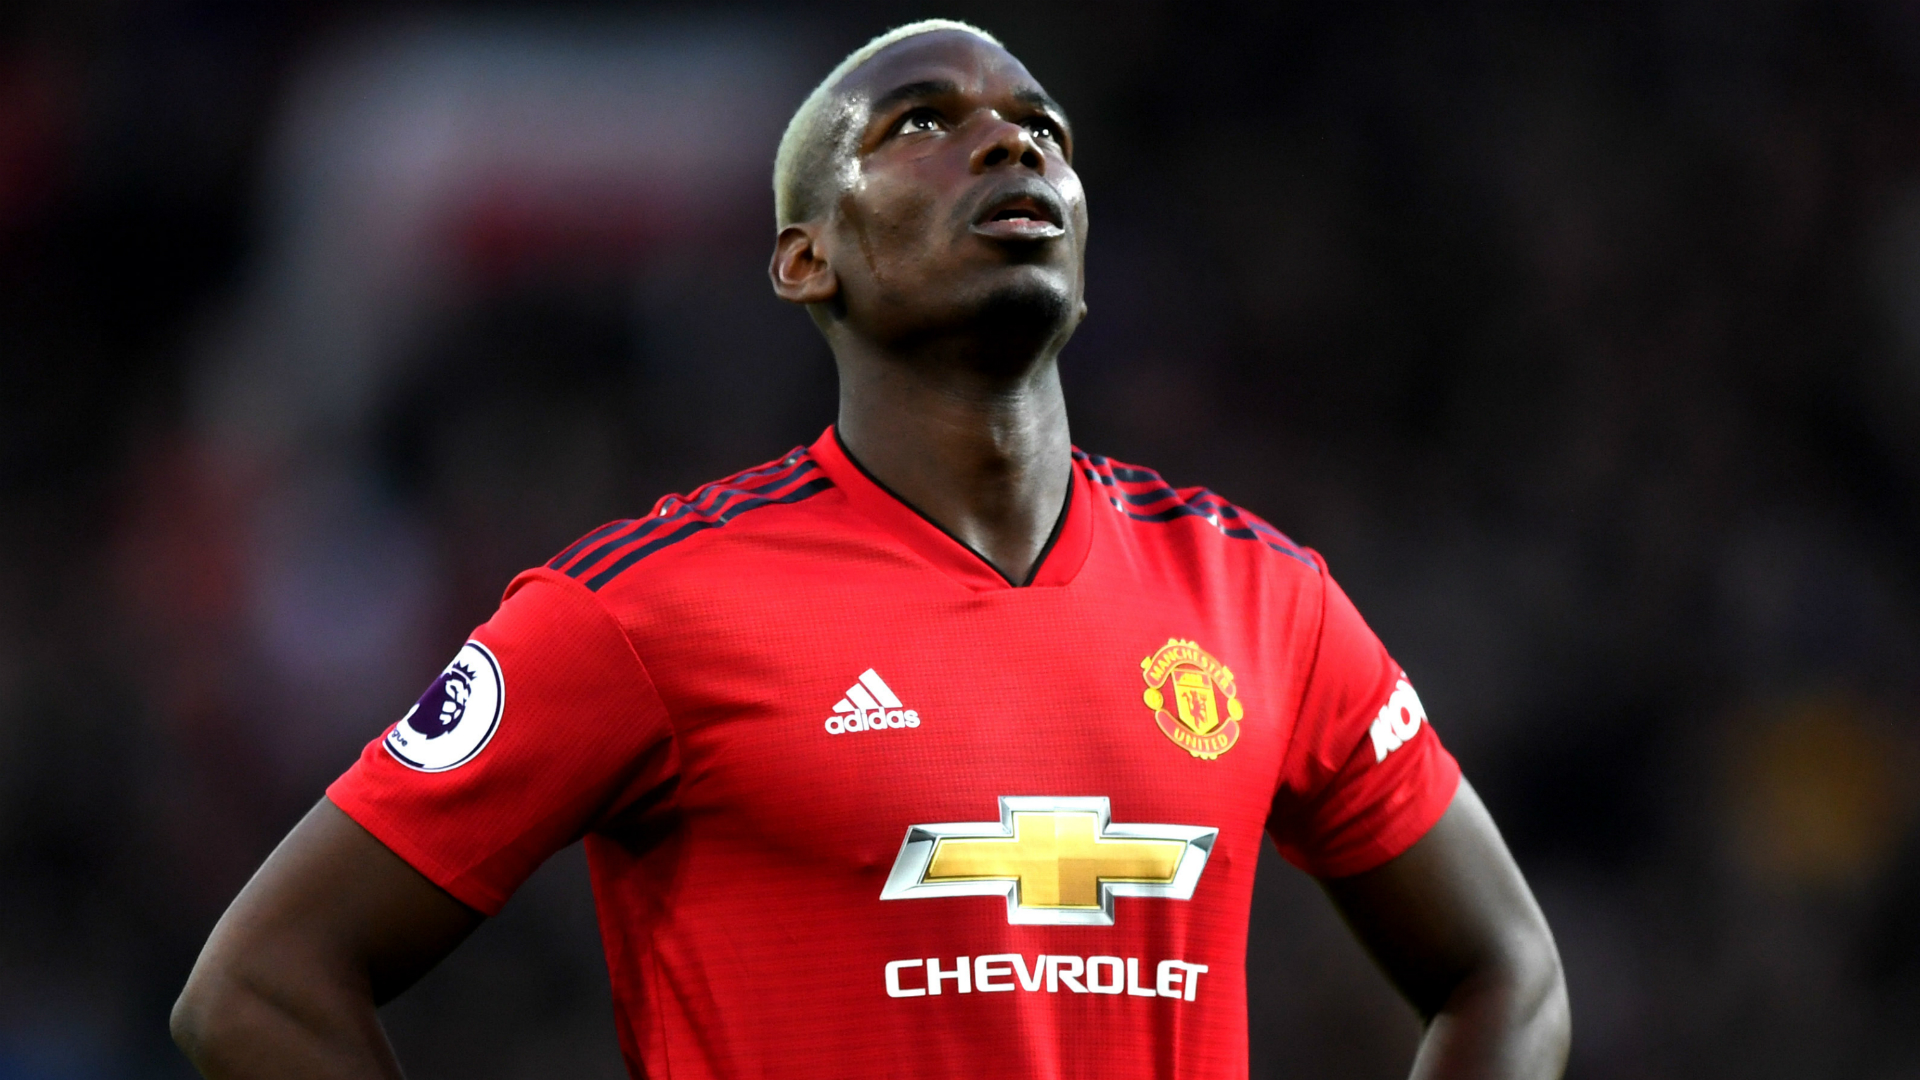 Solskjaer considers deeper role for Pogba after United scrape past Watford